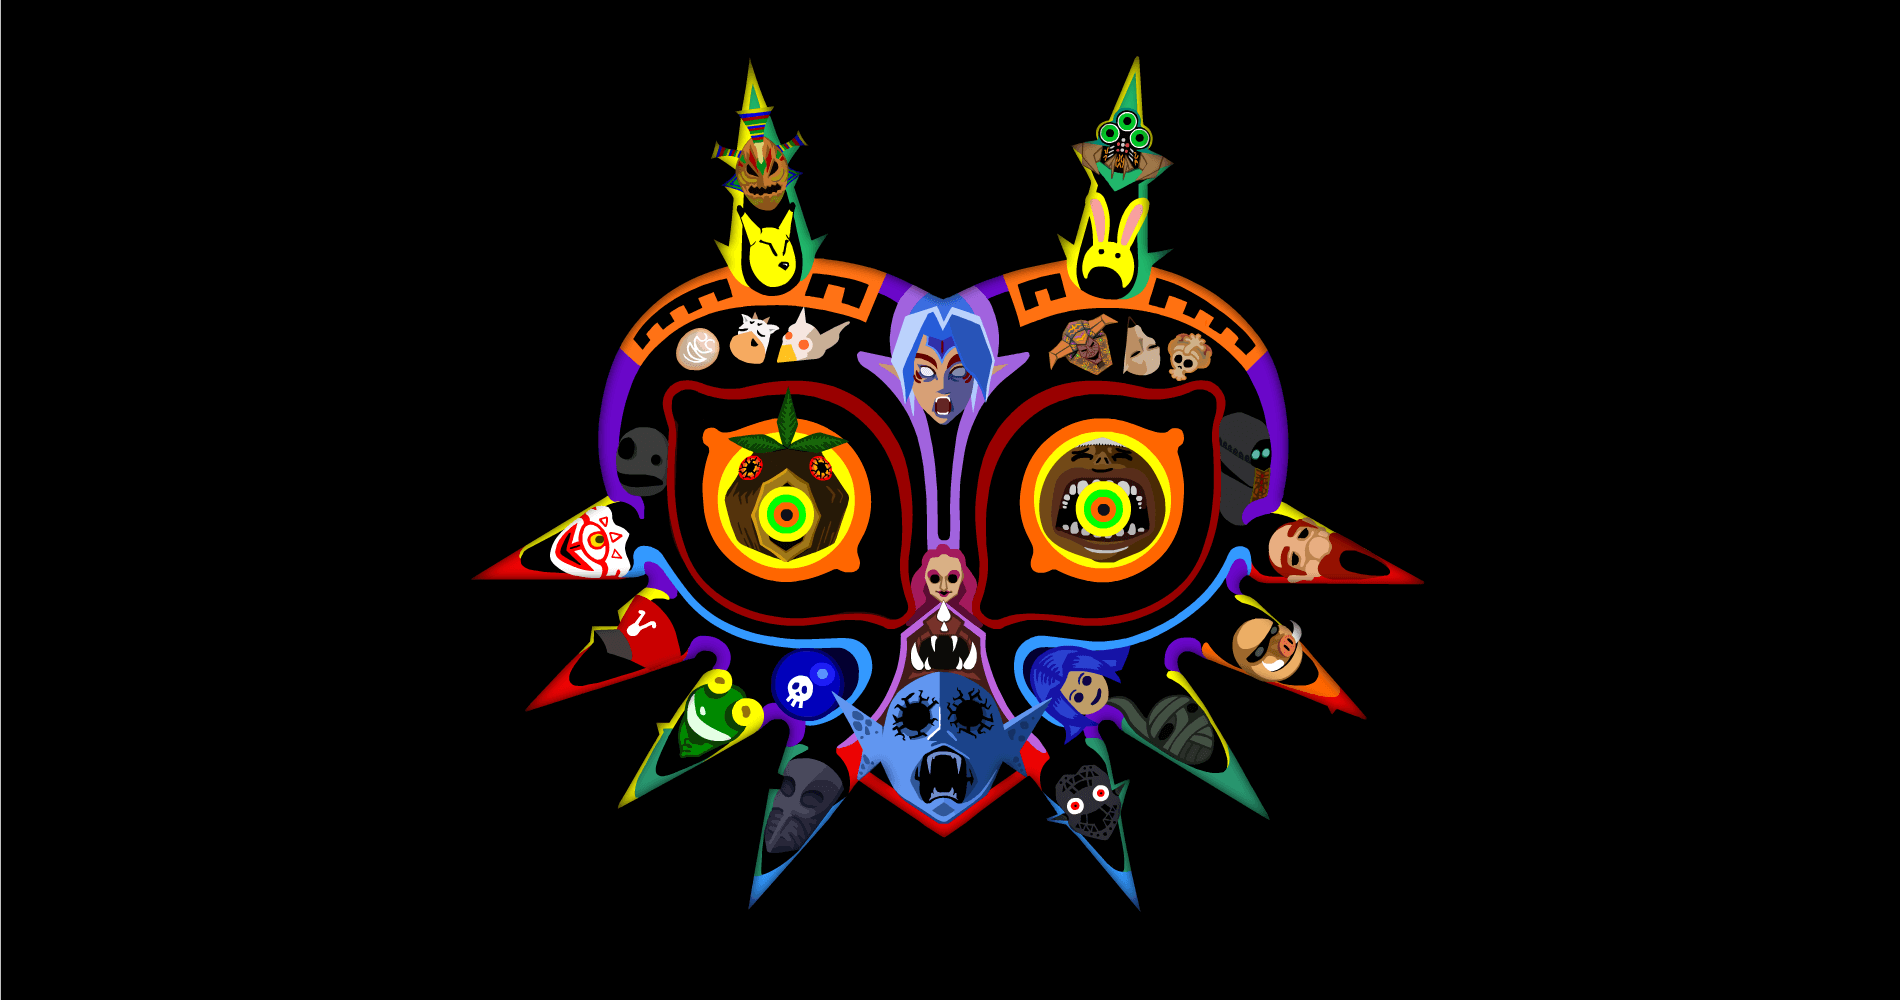 Majora's Mask Wallpapers featuring all the masks